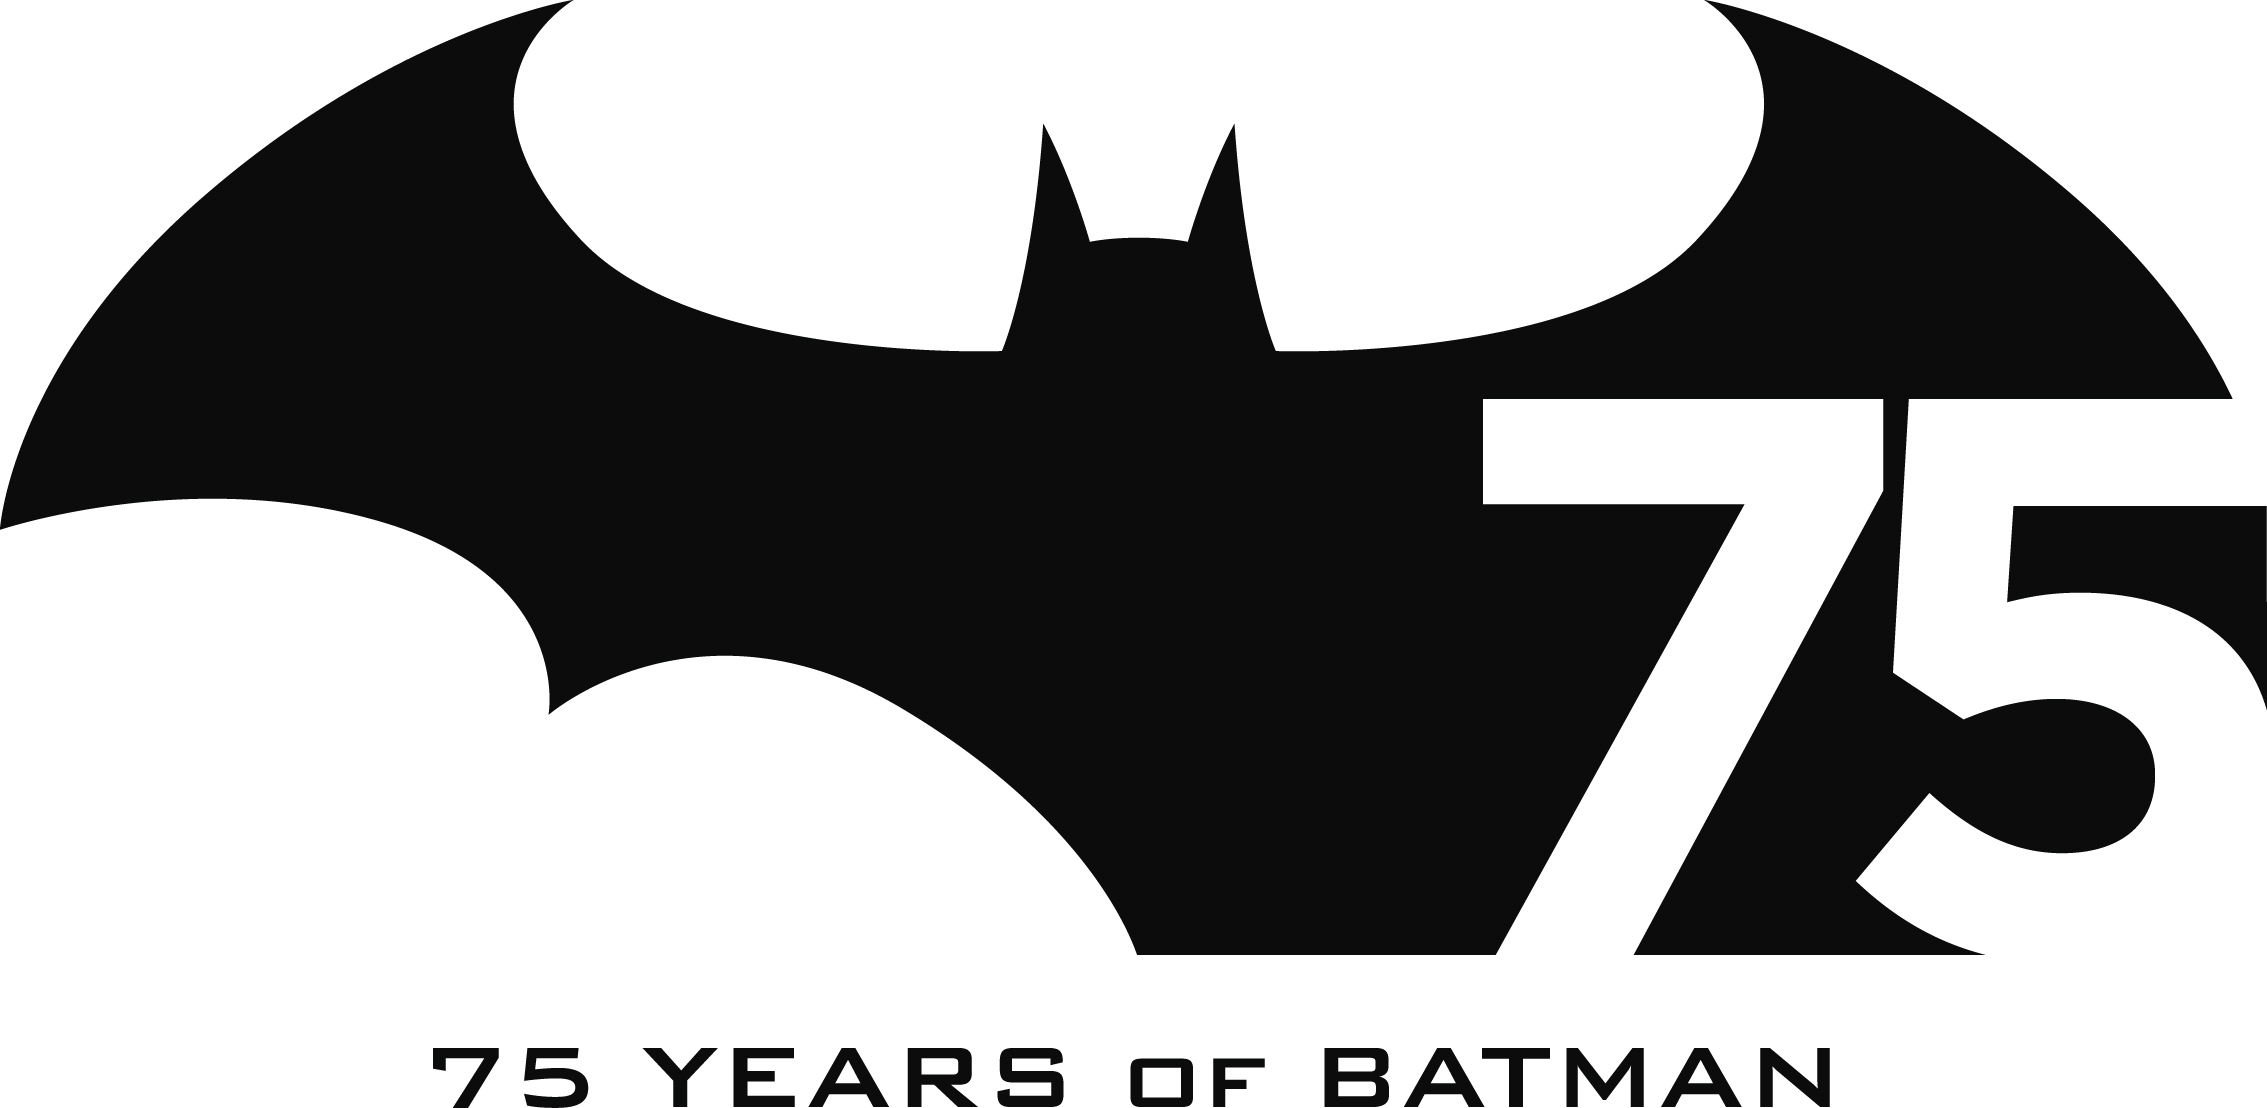 "<span class=""caps"">DC</span>, Warner Bros. Unveil Batman's 75th Anniversary Plans"